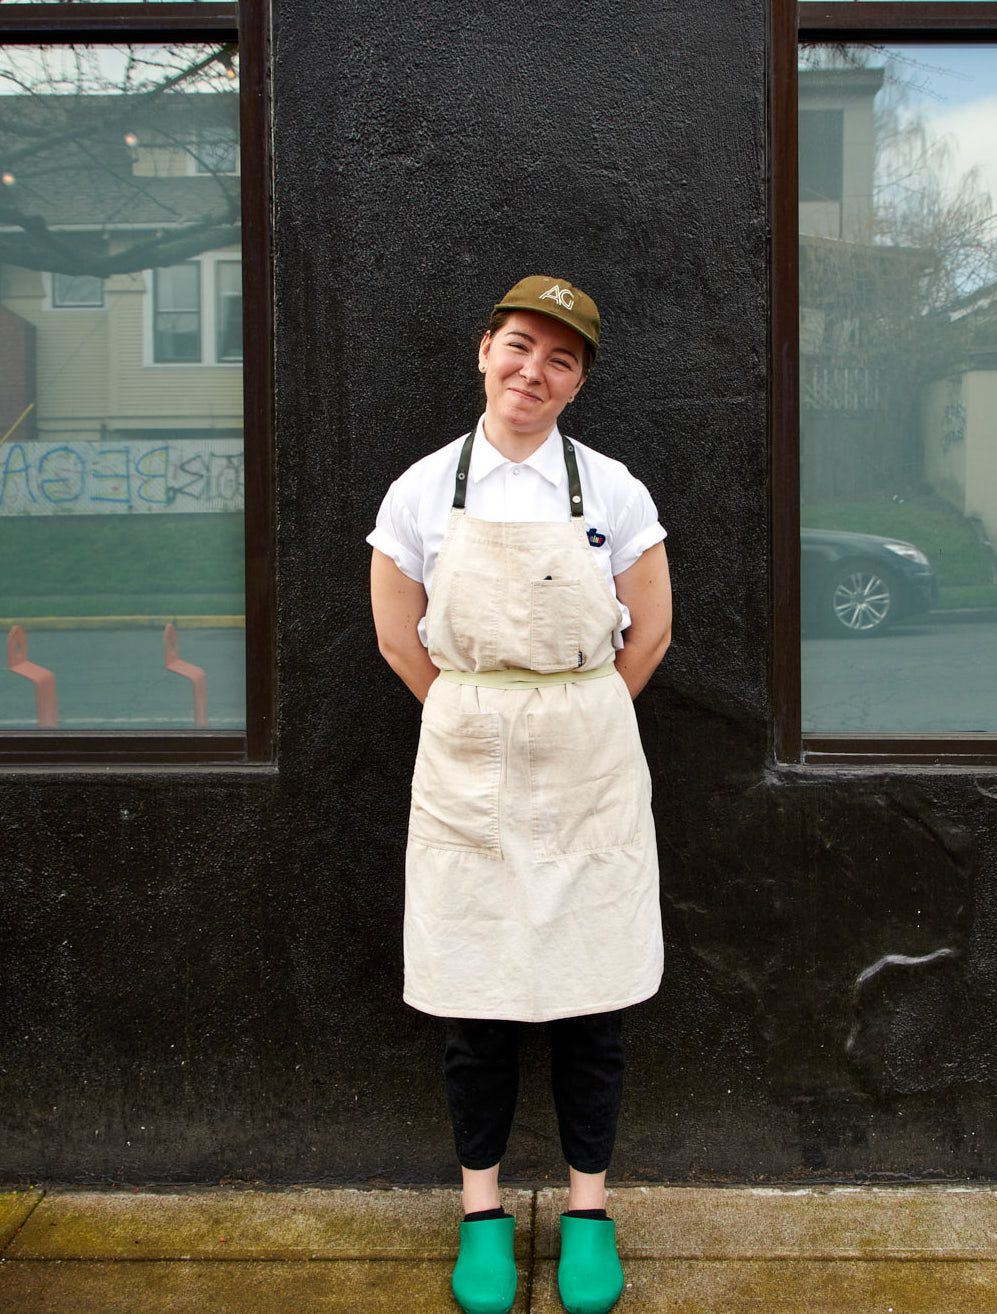 A woman with short hair and a brown cap stands outside a black building with her arms behind her back. She's wearing an off-white apron and bright aquamarine clogs.